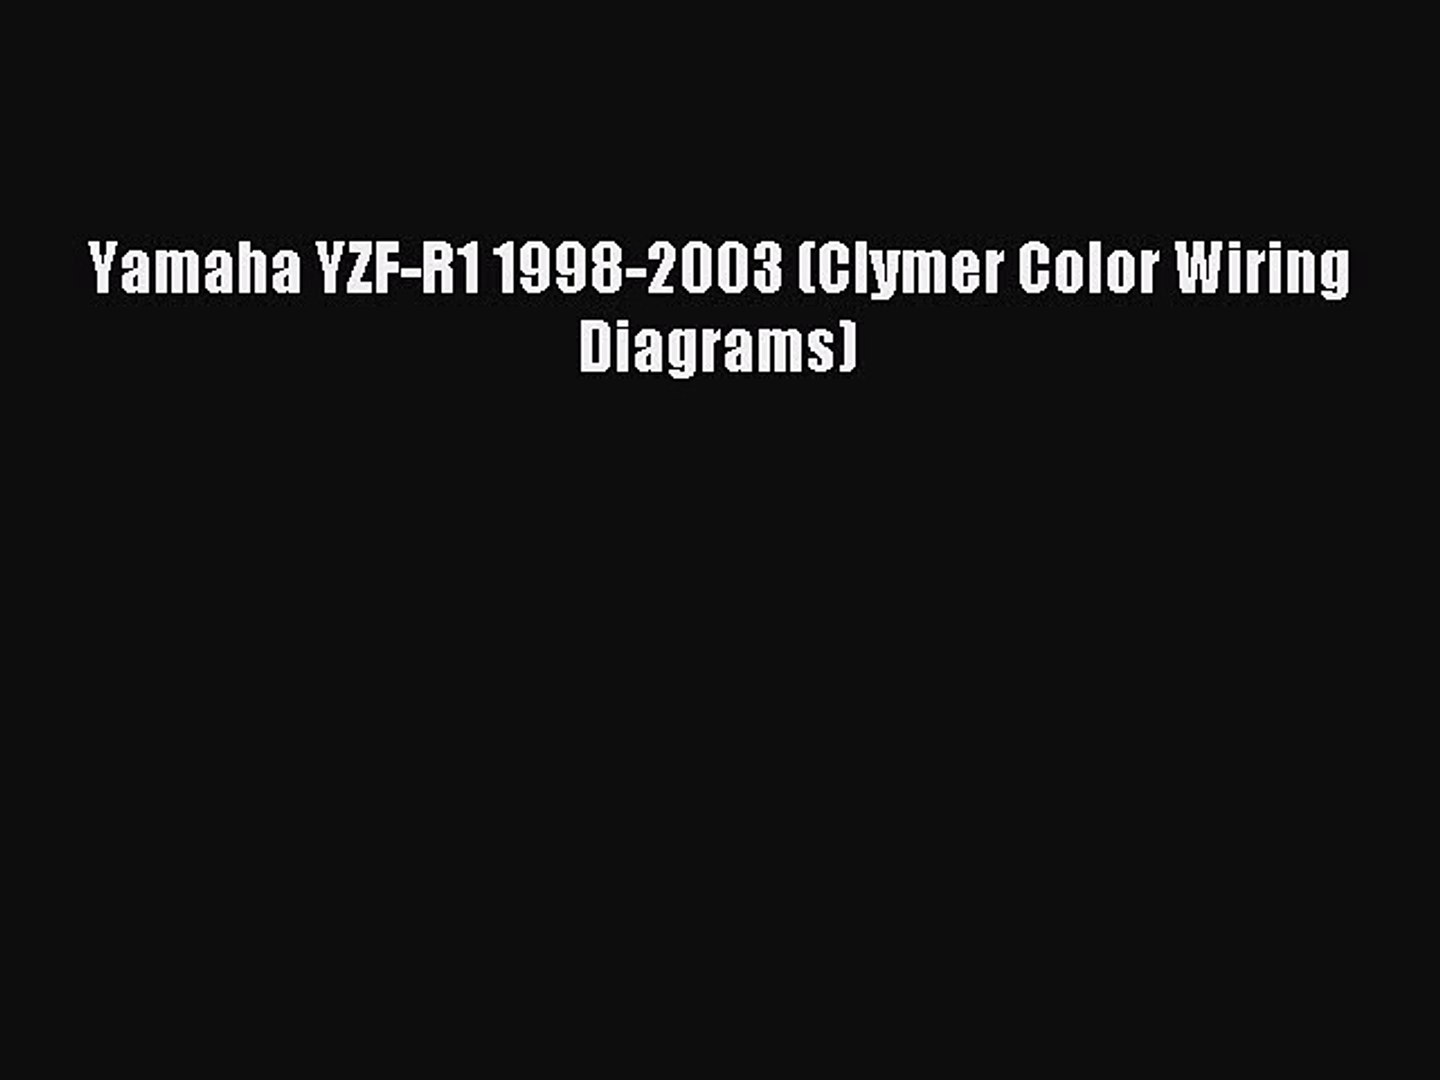 Download Yamaha YZF-R1 1998-2003 (Clymer Color Wiring Diagrams) Ebook on